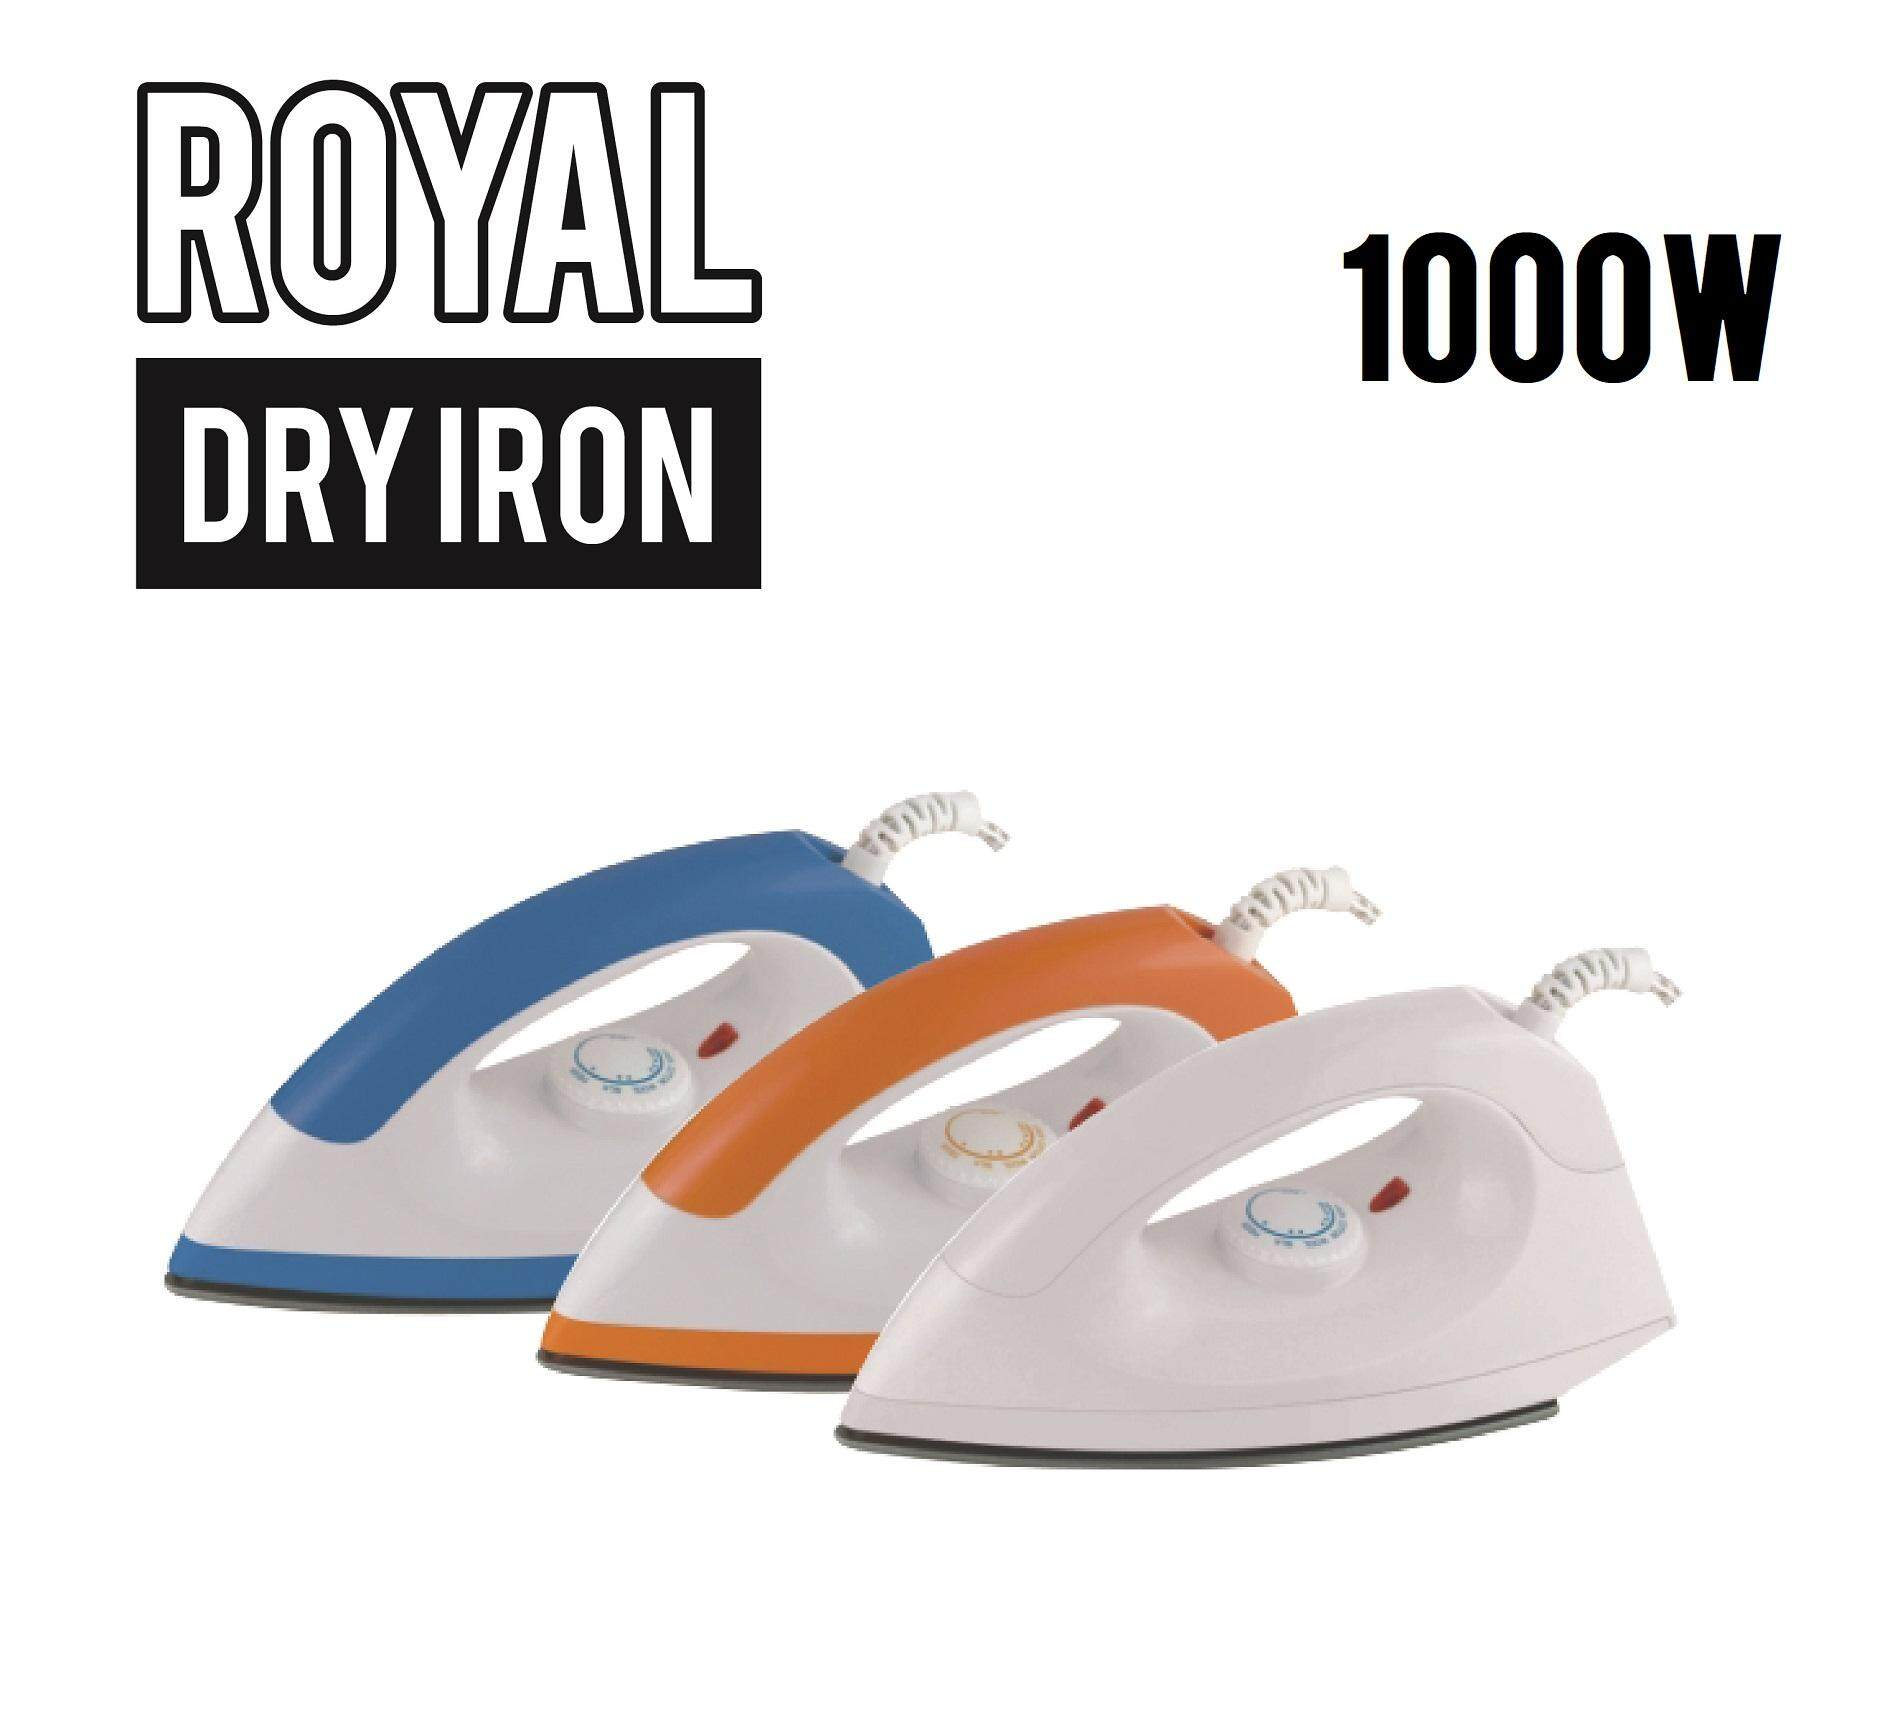 Promo ! Royal Dry Iron 1.5 Meter 1000 W / 230 V 50hz Swivel Cord Ypf2003a By E-Z Shop.